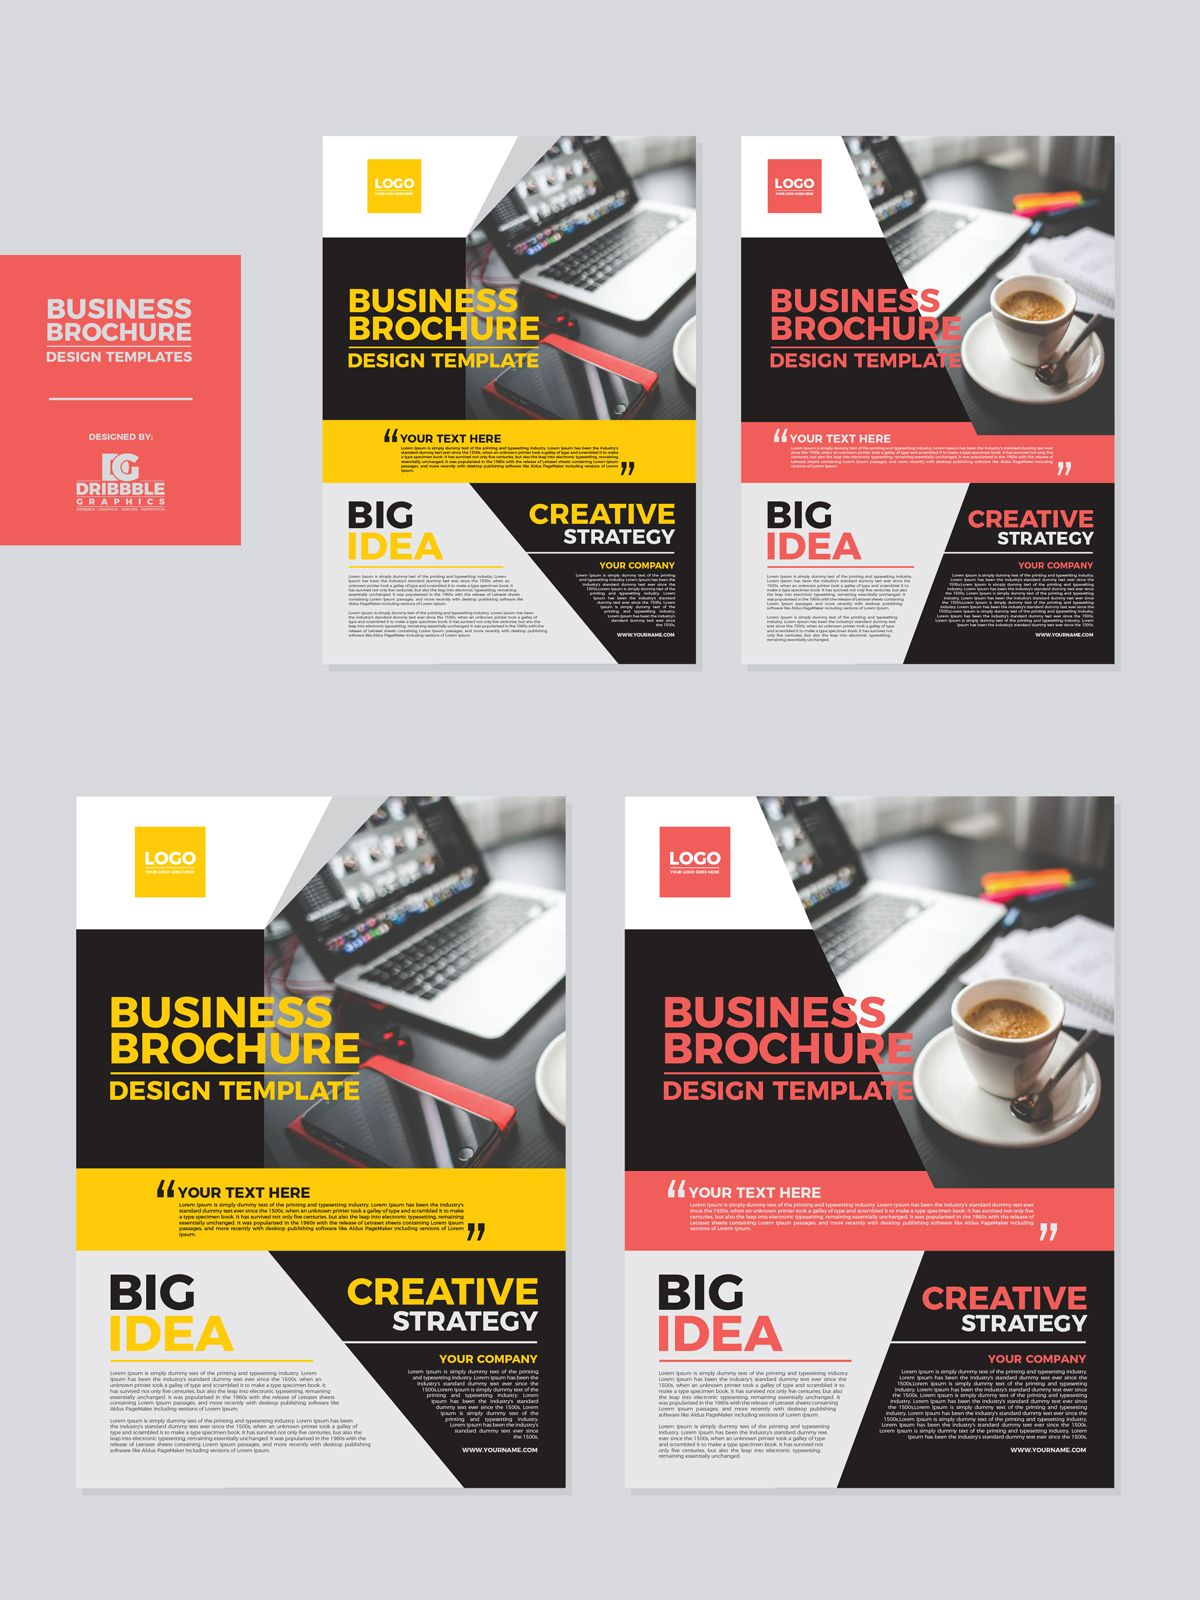 Free business brochure design templates brochures and flyers the freebie of the day is free business brochure design templates which is designed in ai format the editable vector file allow you to make changes accmission Gallery